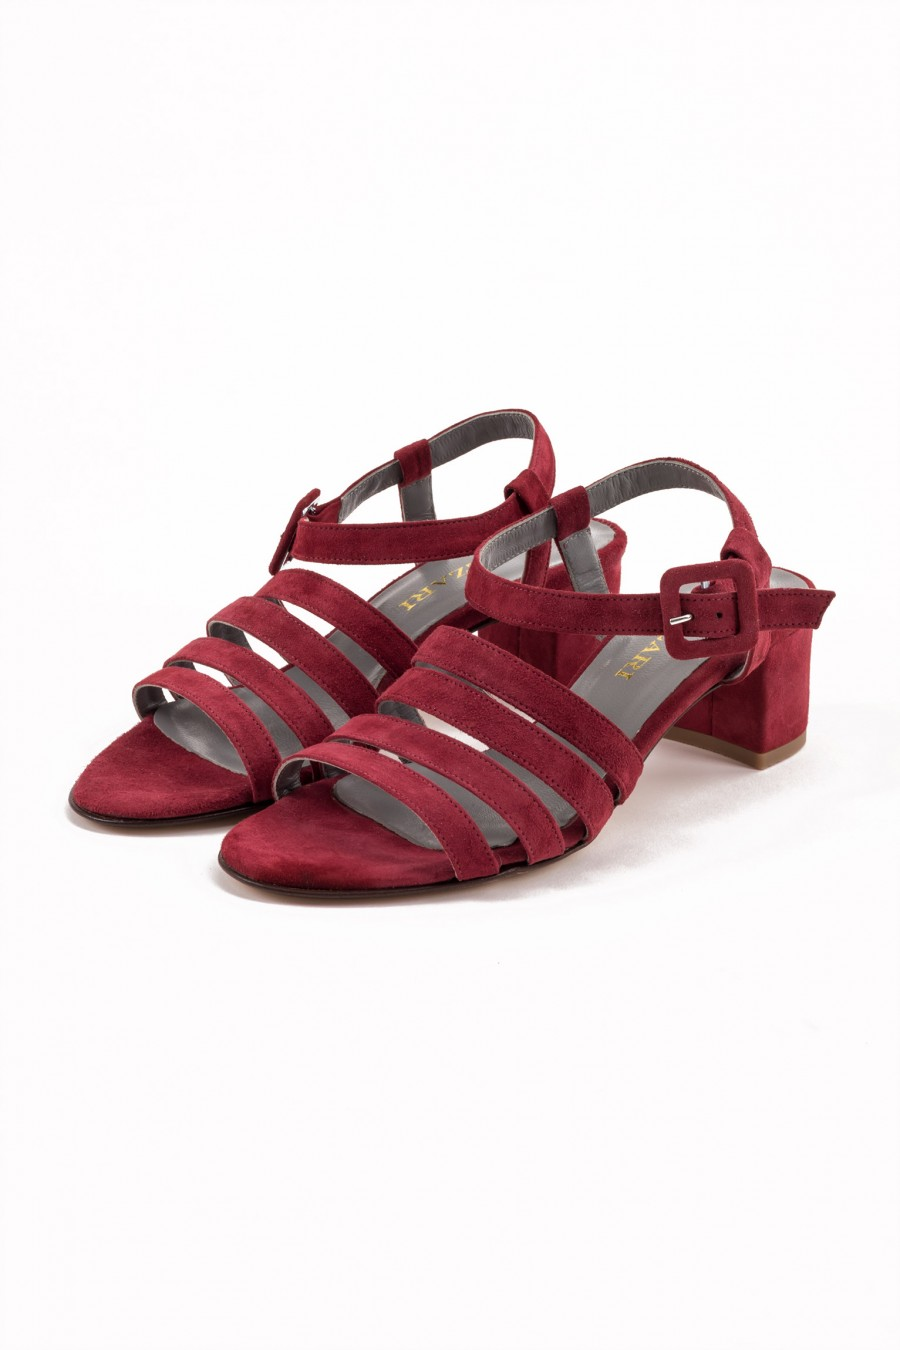 Elegant red sandal